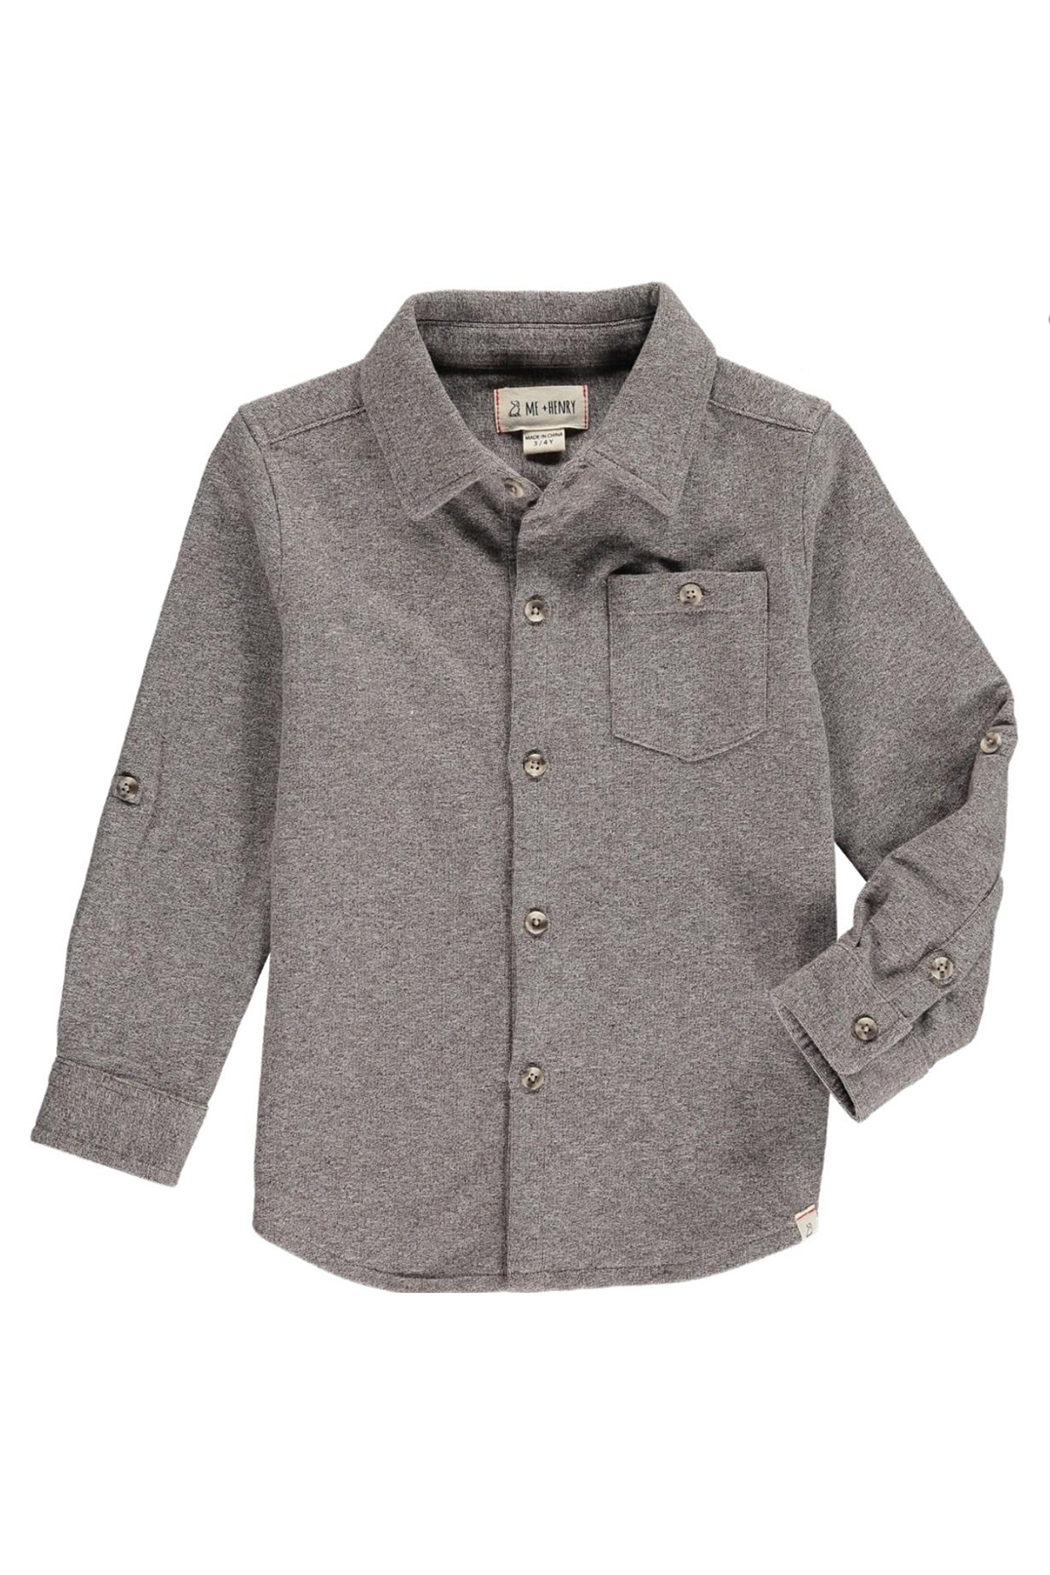 Me & Henry Brown Stretch Jersey Shirt - Main Image